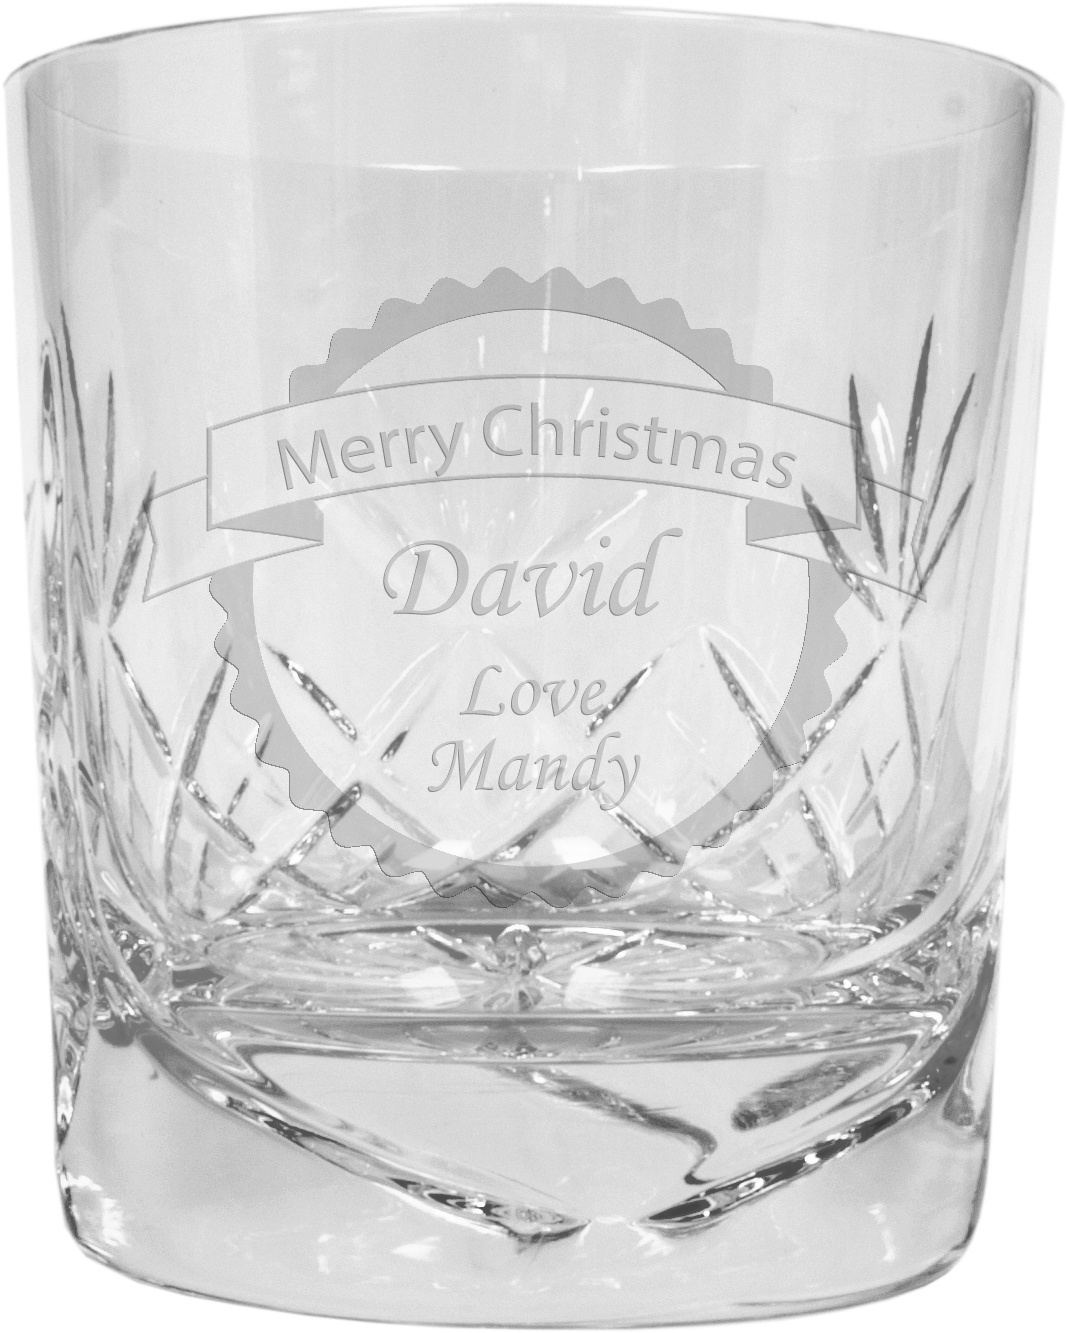 "Merry Christmas Banner Design Crystal Whisky Tumbler 9.5cm (3.5"")"